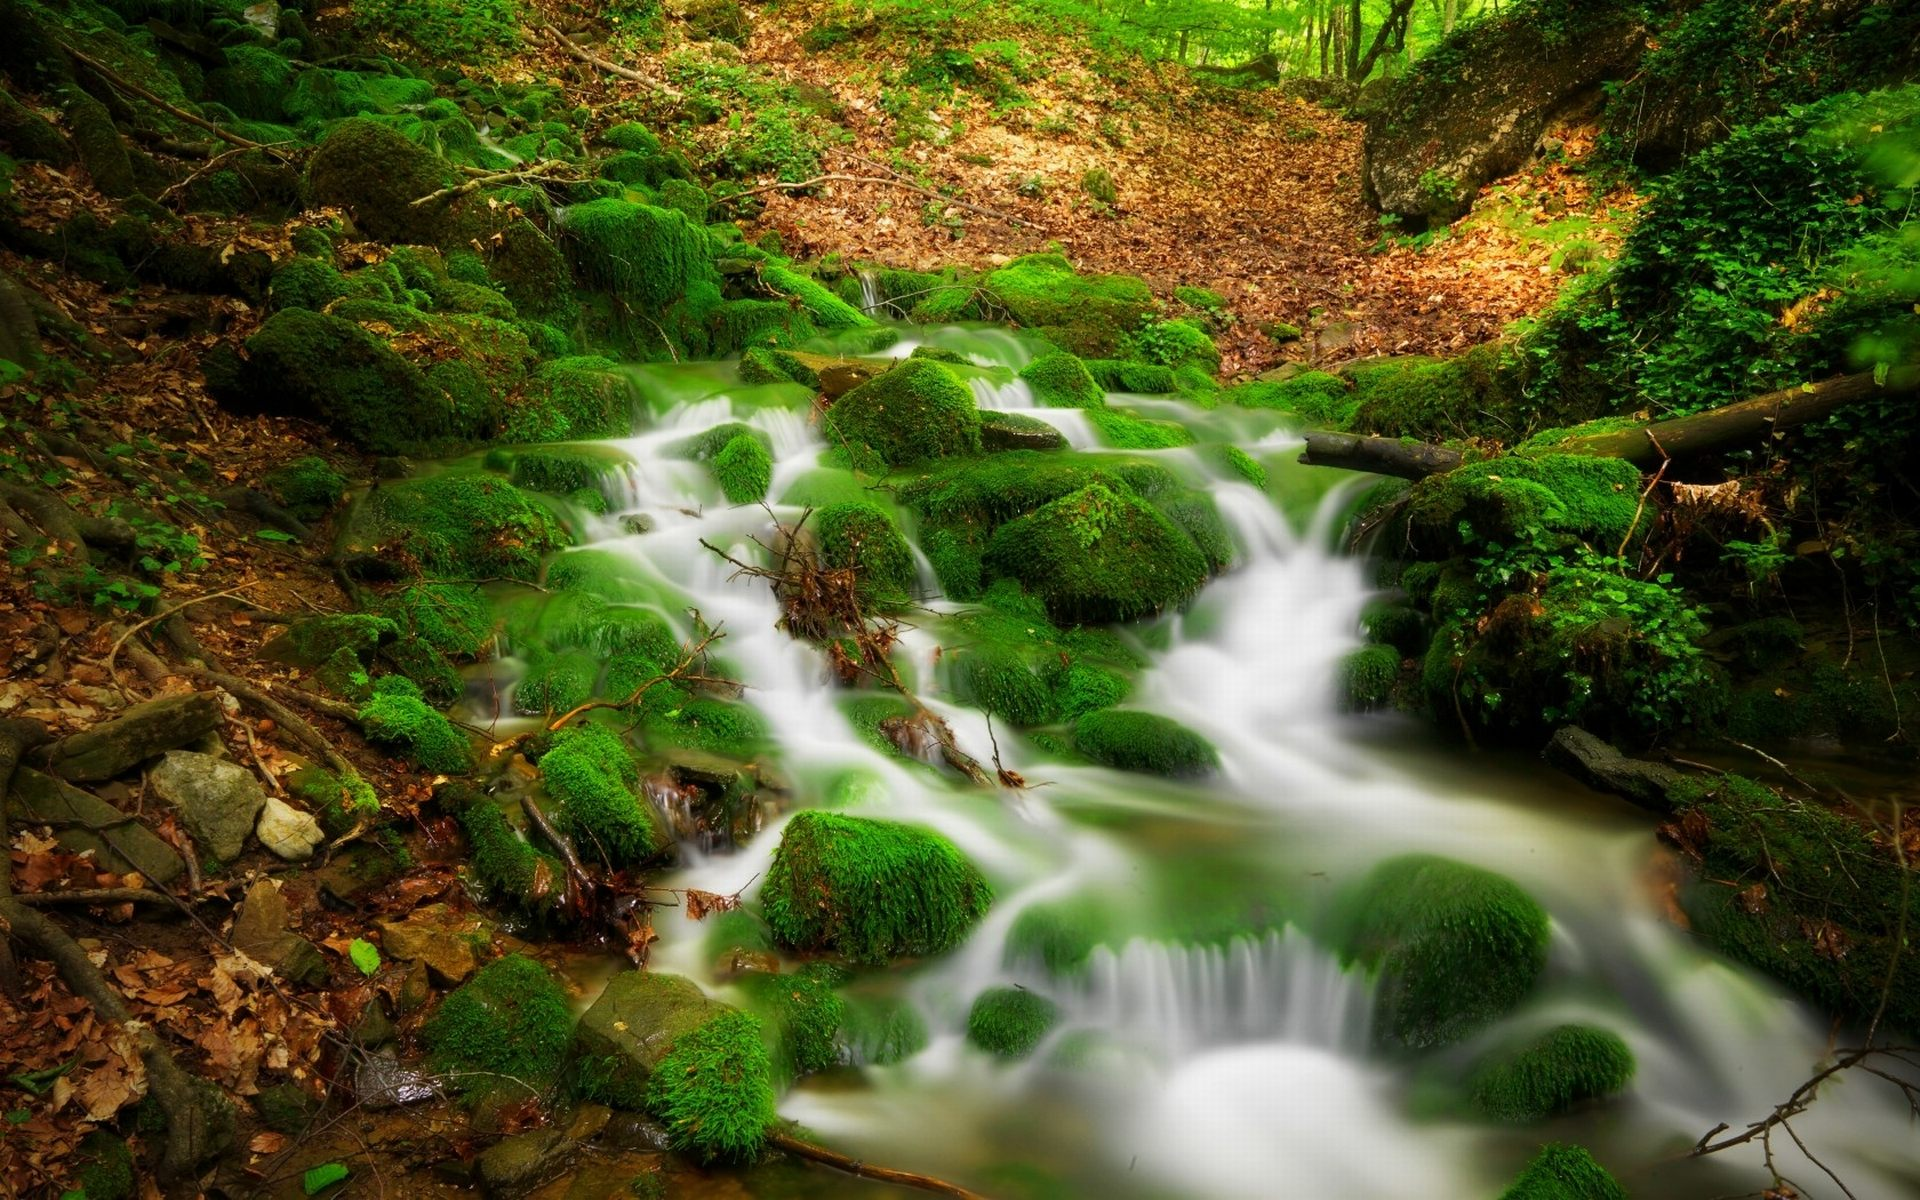 3d Christmas Tree Wallpaper Backgrounds Forest Stream Clear Water Rock Covered With Green Moss